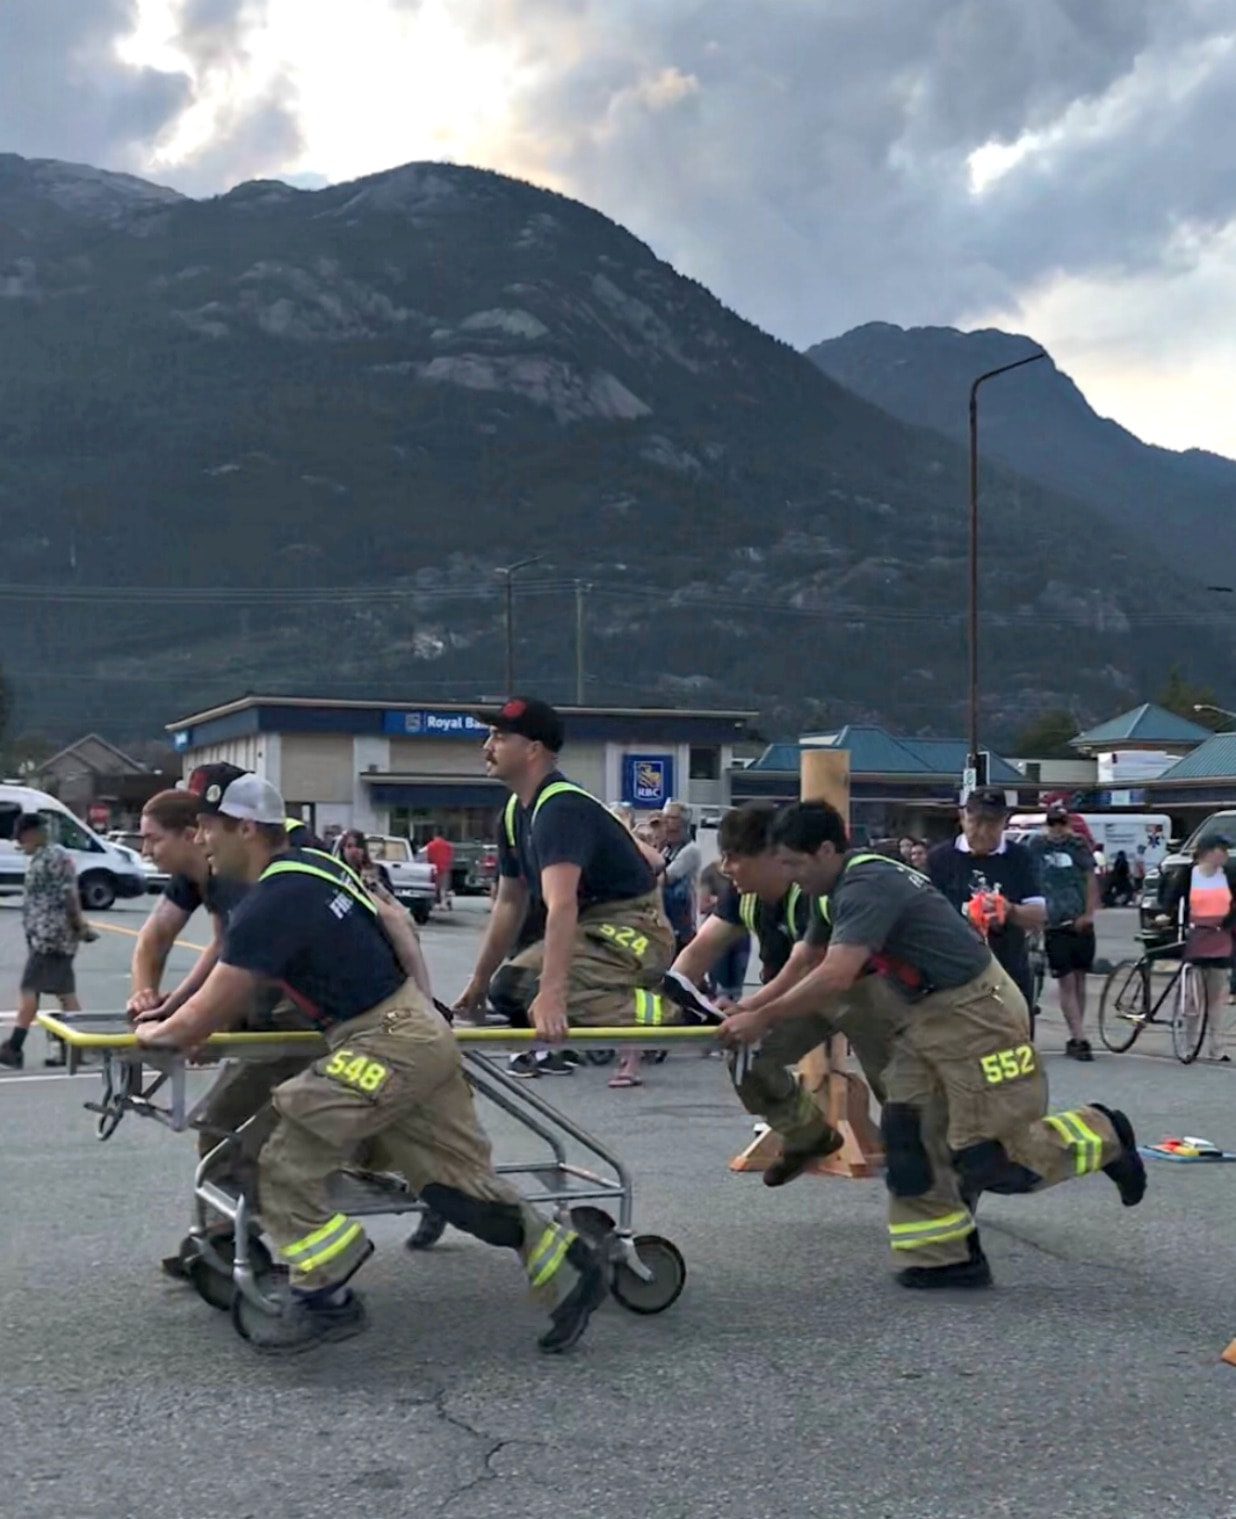 5 firefighters pushing a gurney in a bed race in Squamish BC